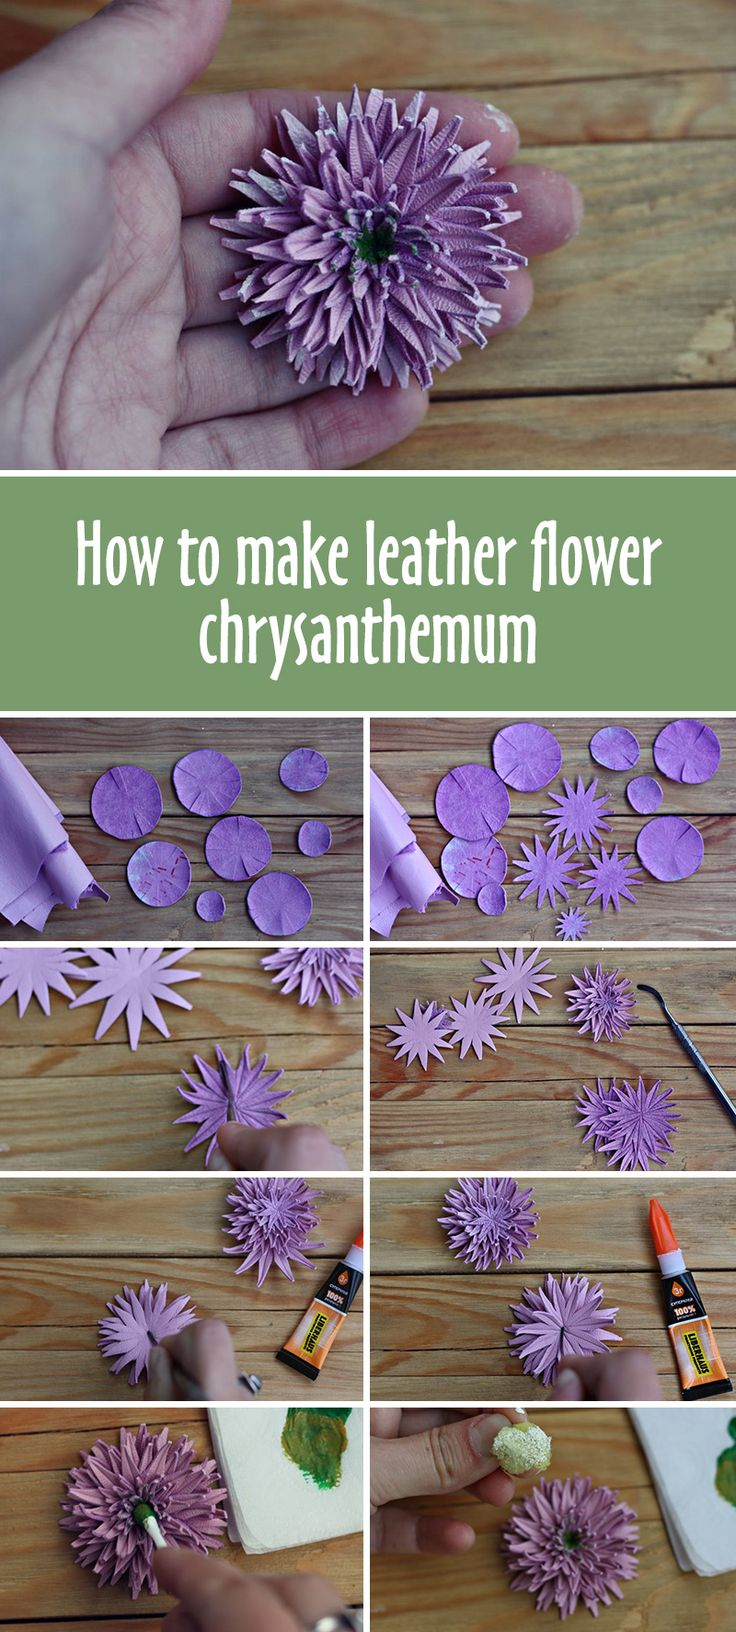 How to make leather chrysanthemum flower